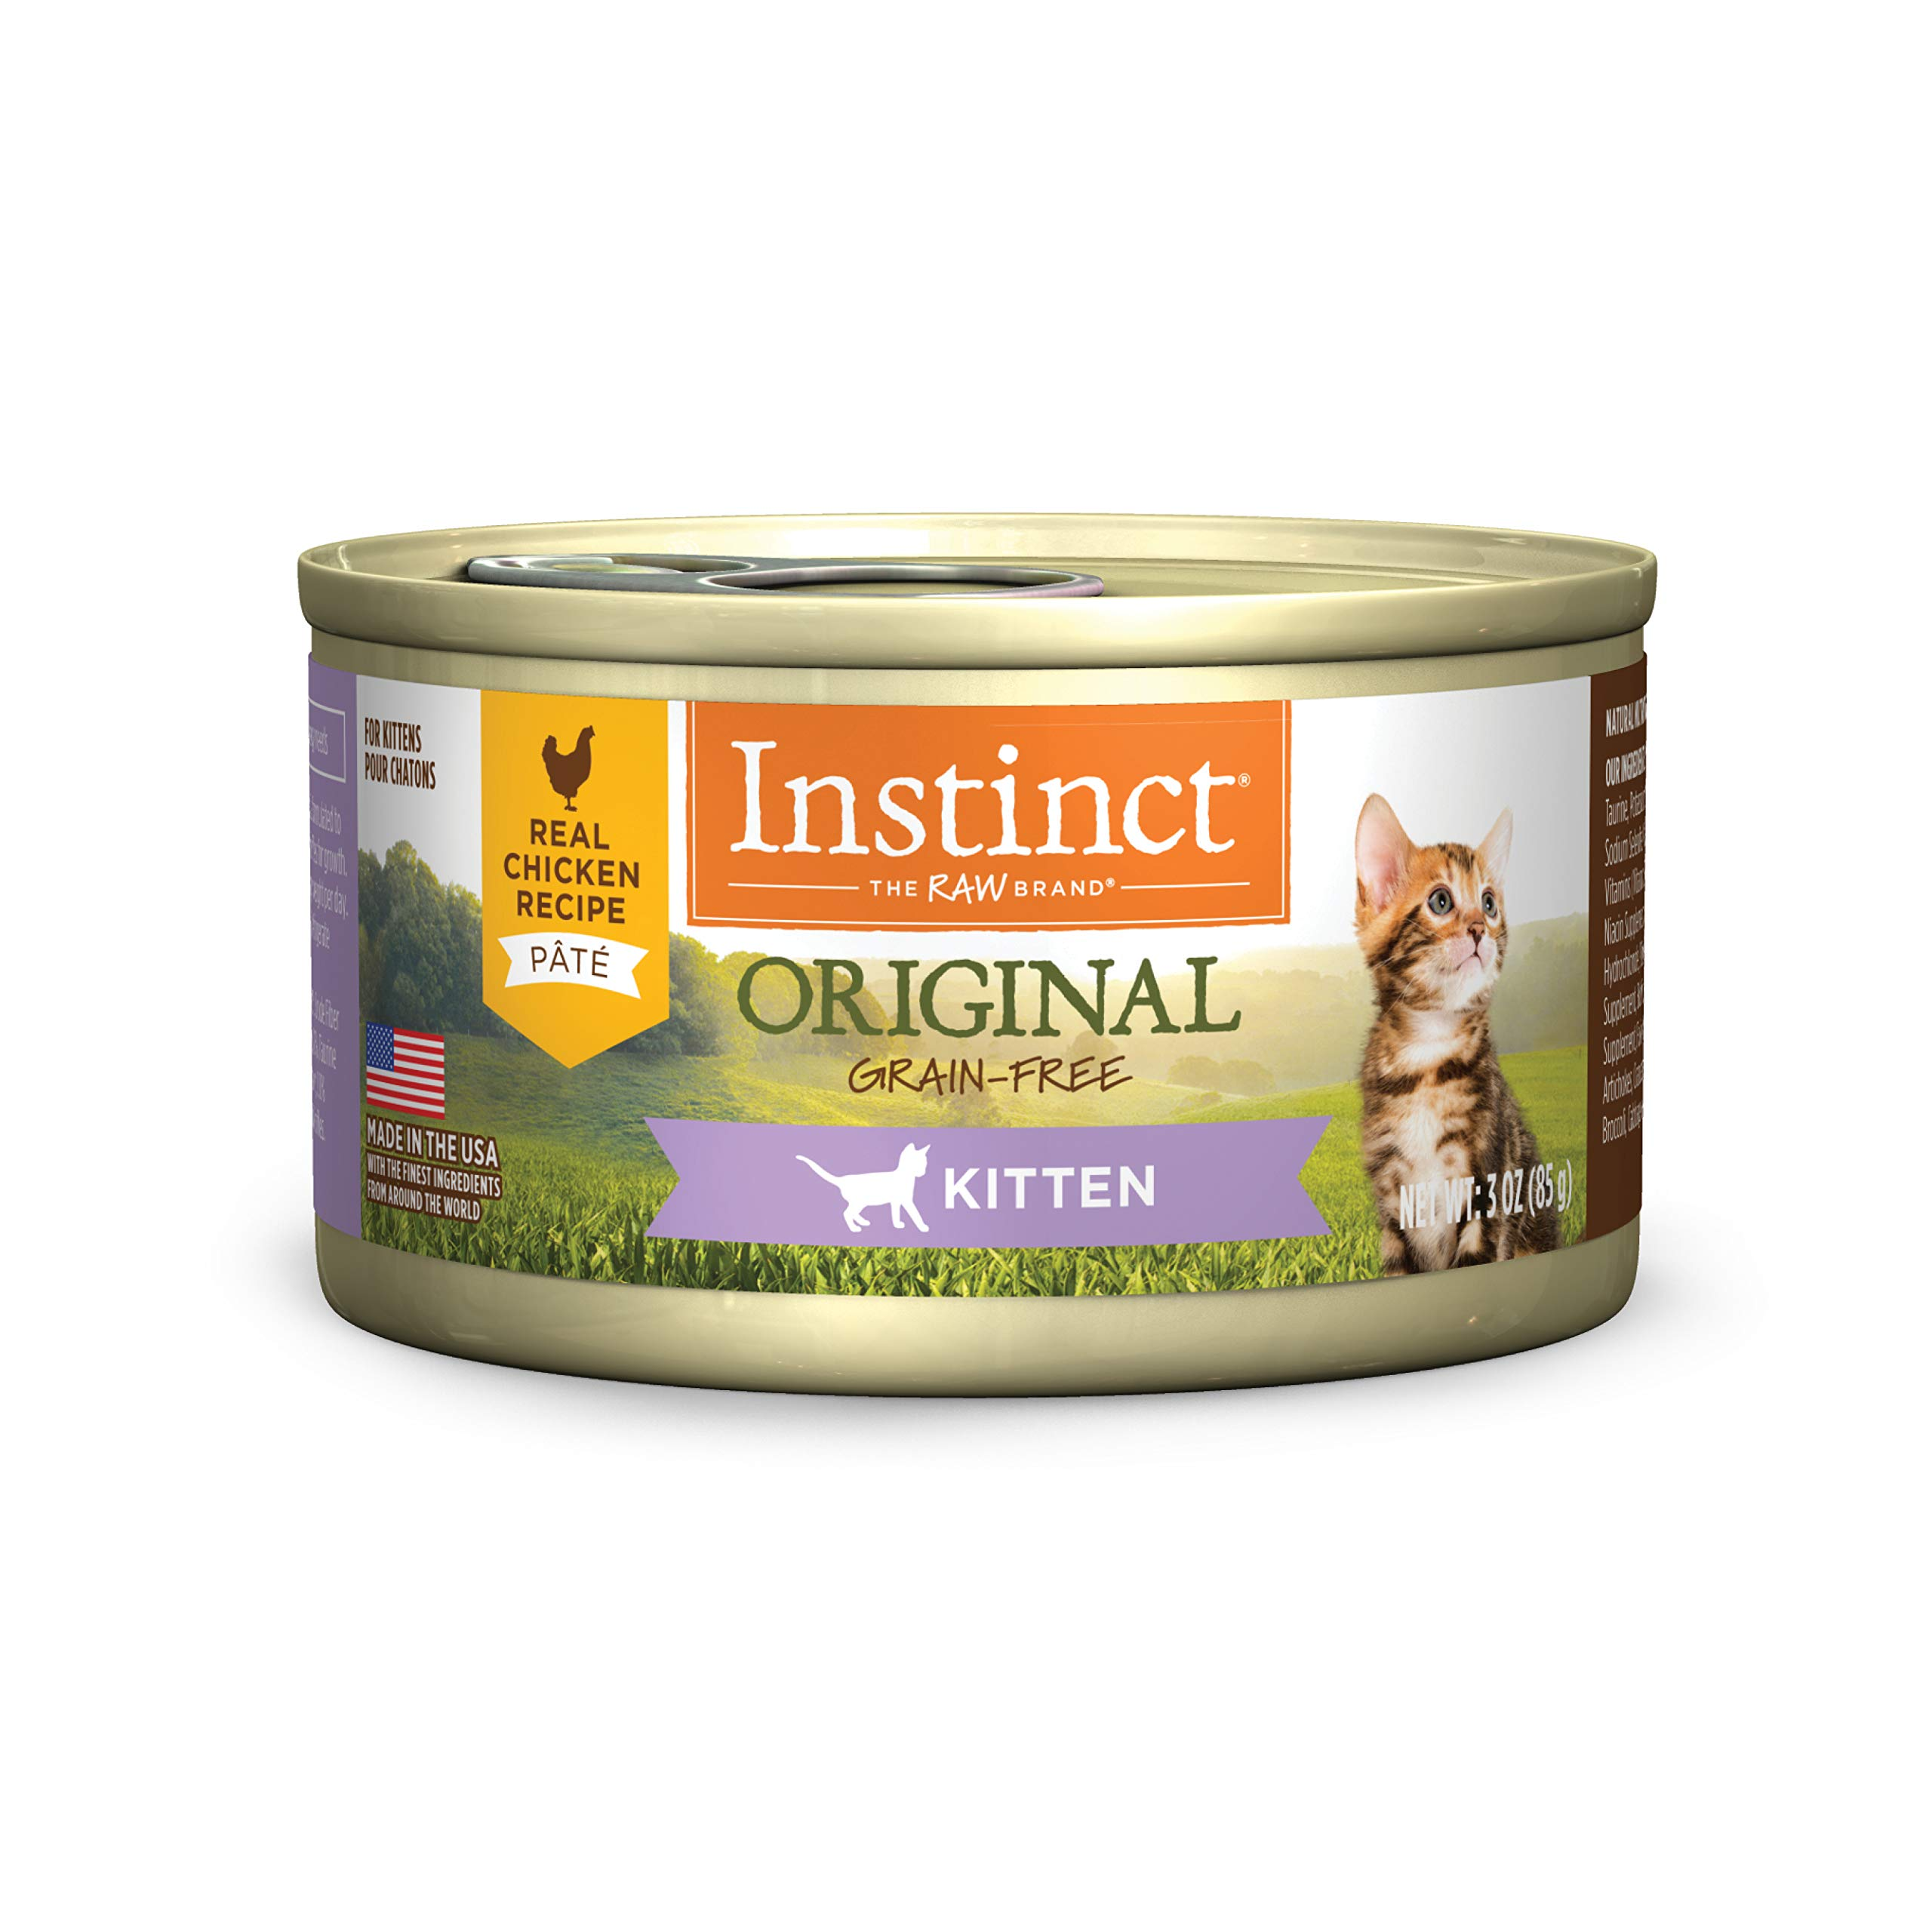 Instinct Original Kitten Grain Free Real Chicken Recipe Natural Wet Canned Cat Food by Nature's Variety, 3 oz. Cans (Case of 24) by Instinct